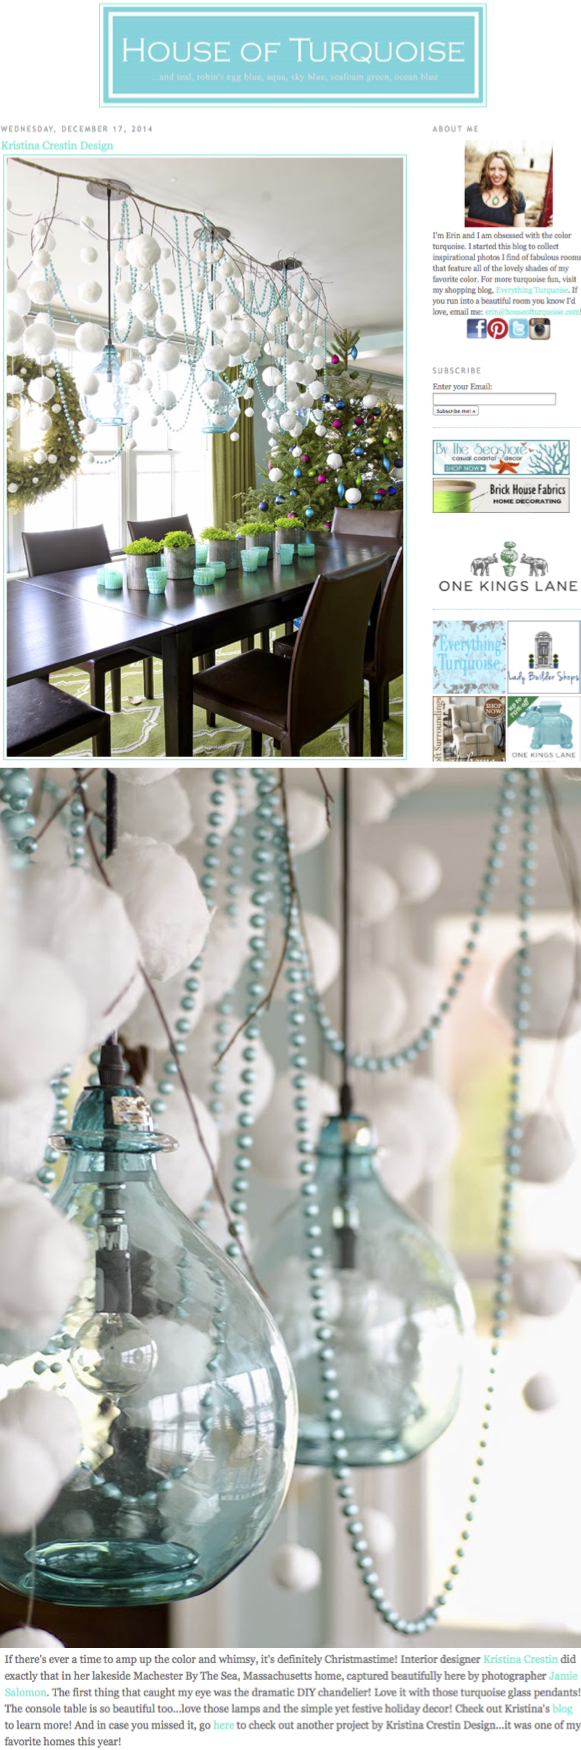 Fabulous Kristina Crestin Turquoise Facebook House Turquoise Blog Turquoise Features My Holiday Decorating House Turquoise Home Tour House houzz-03 House Of Turquoise